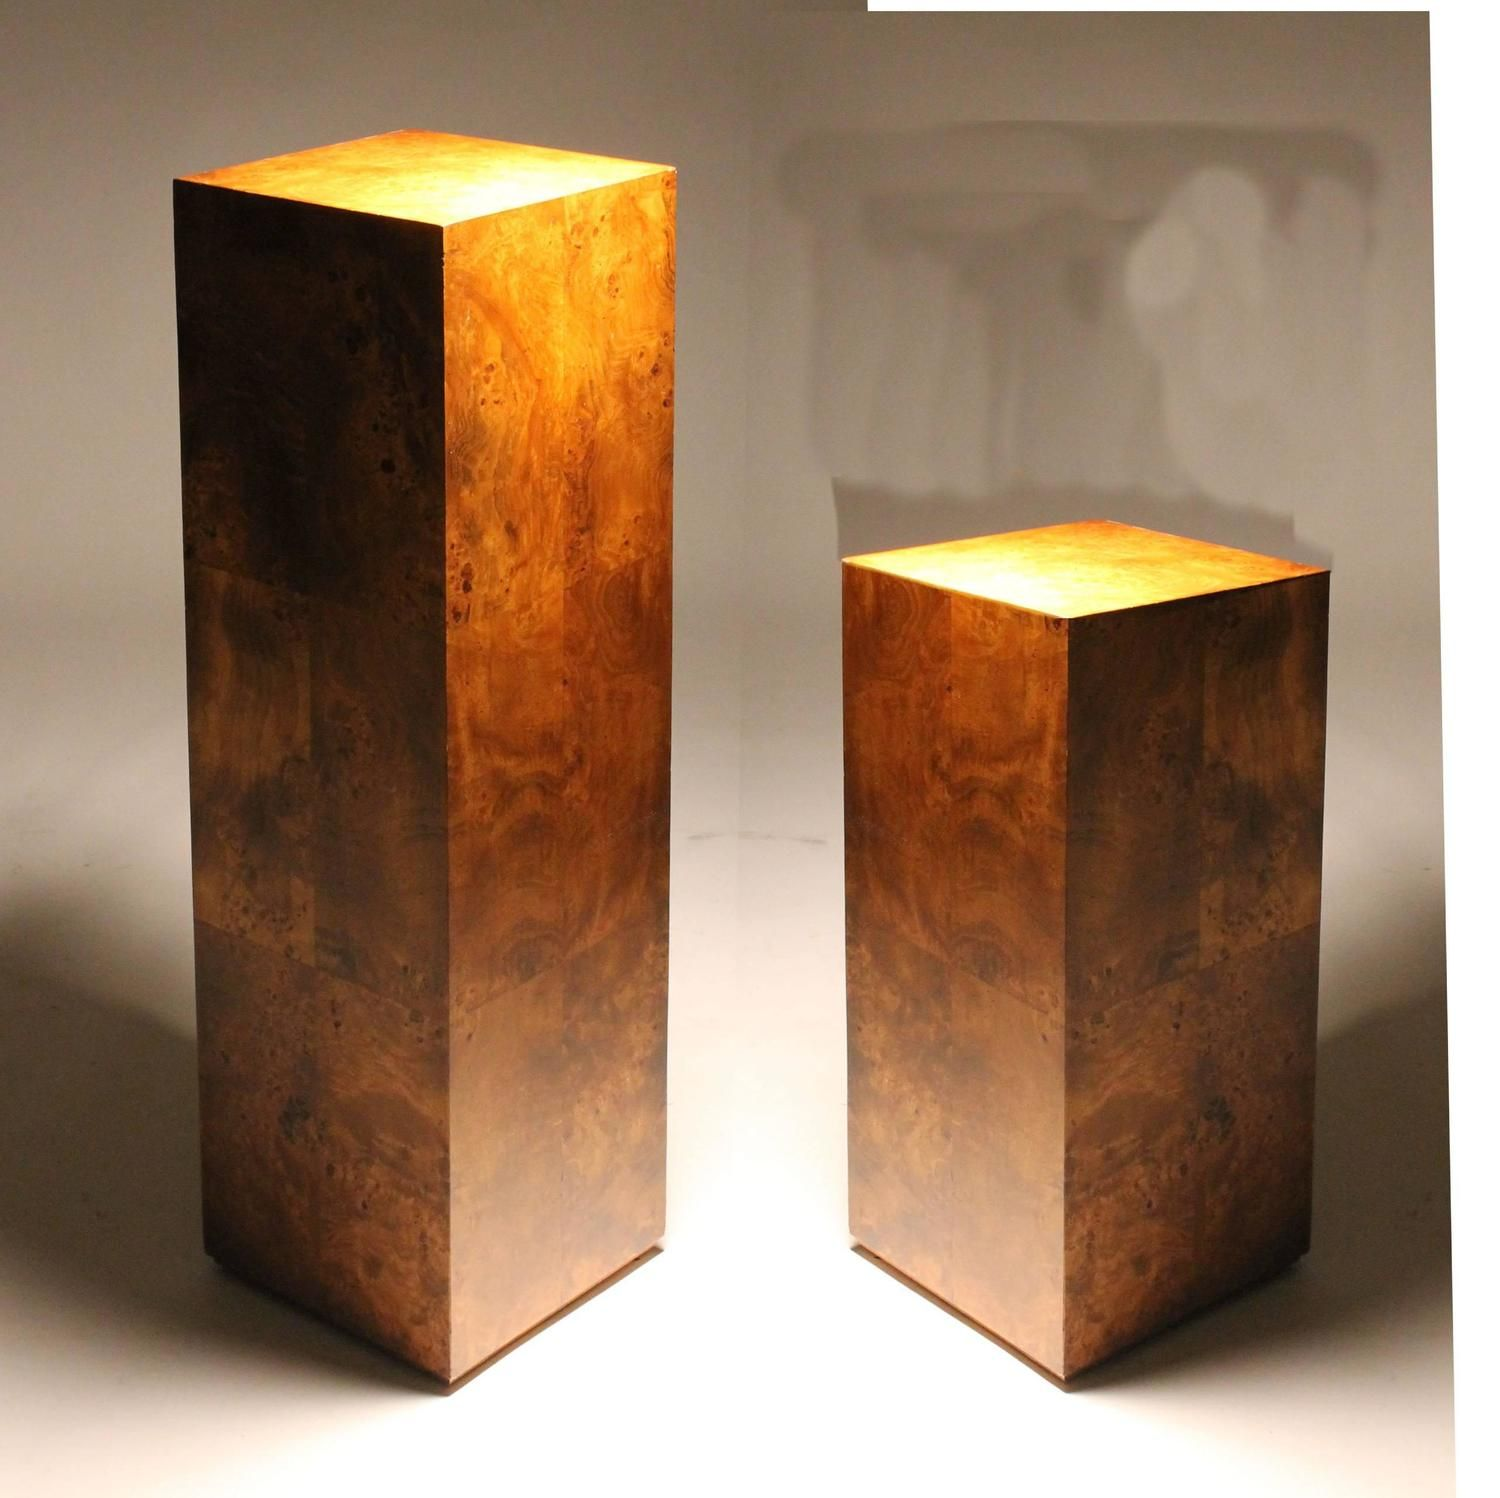 Wood Pedestals For Sculptures Related Keywords & Suggestions  Wood